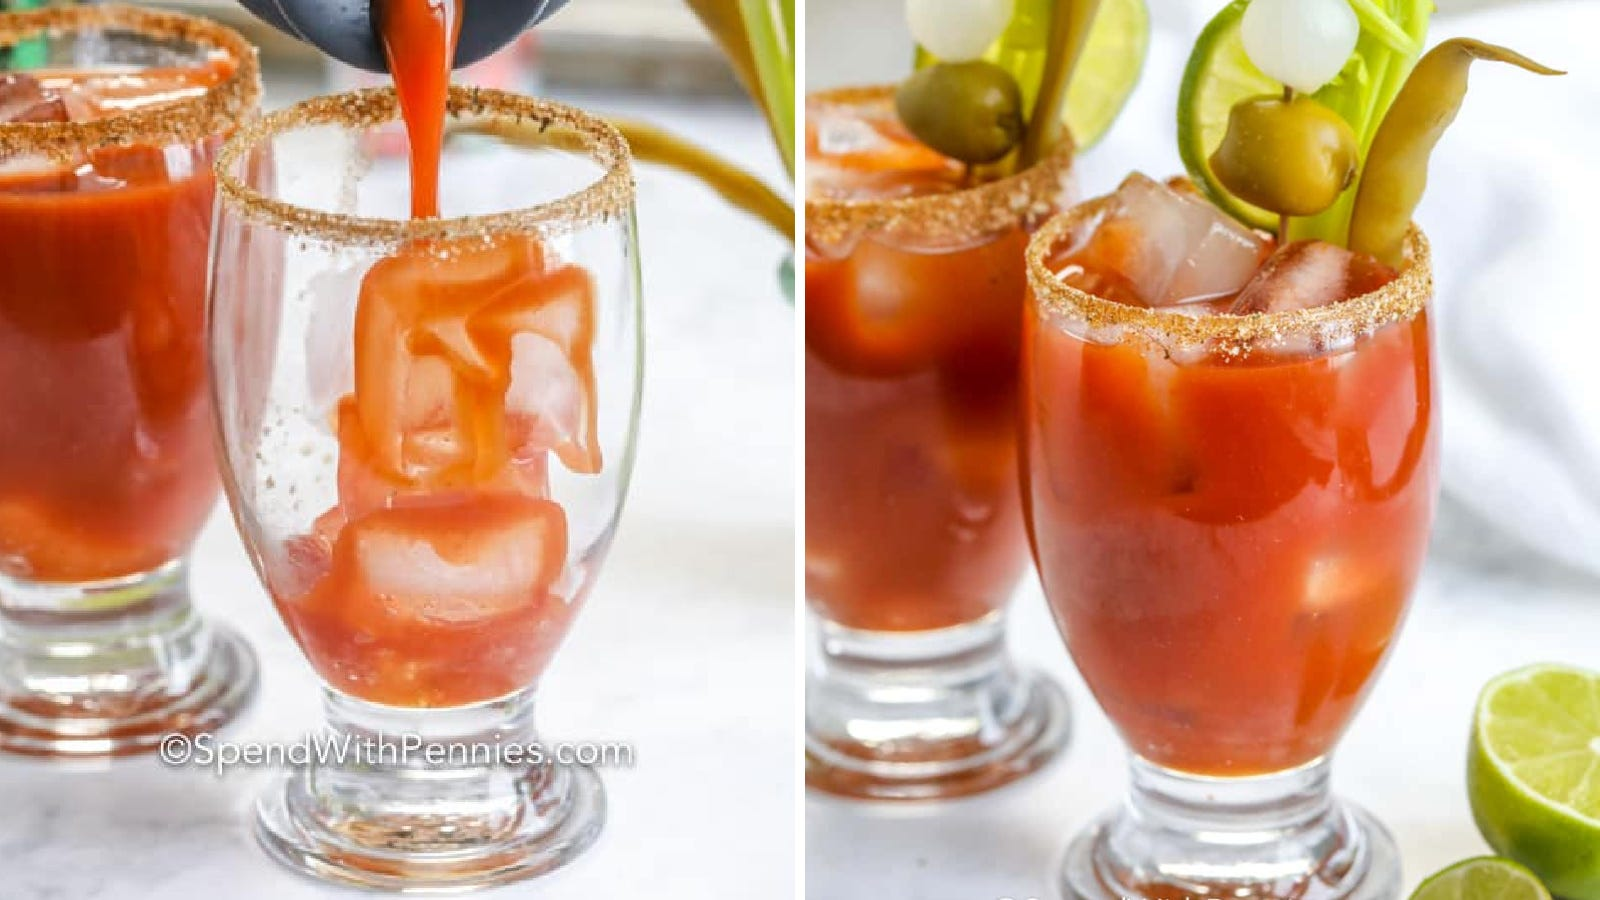 Two images of bloody Marys made by Spend with Pennies.